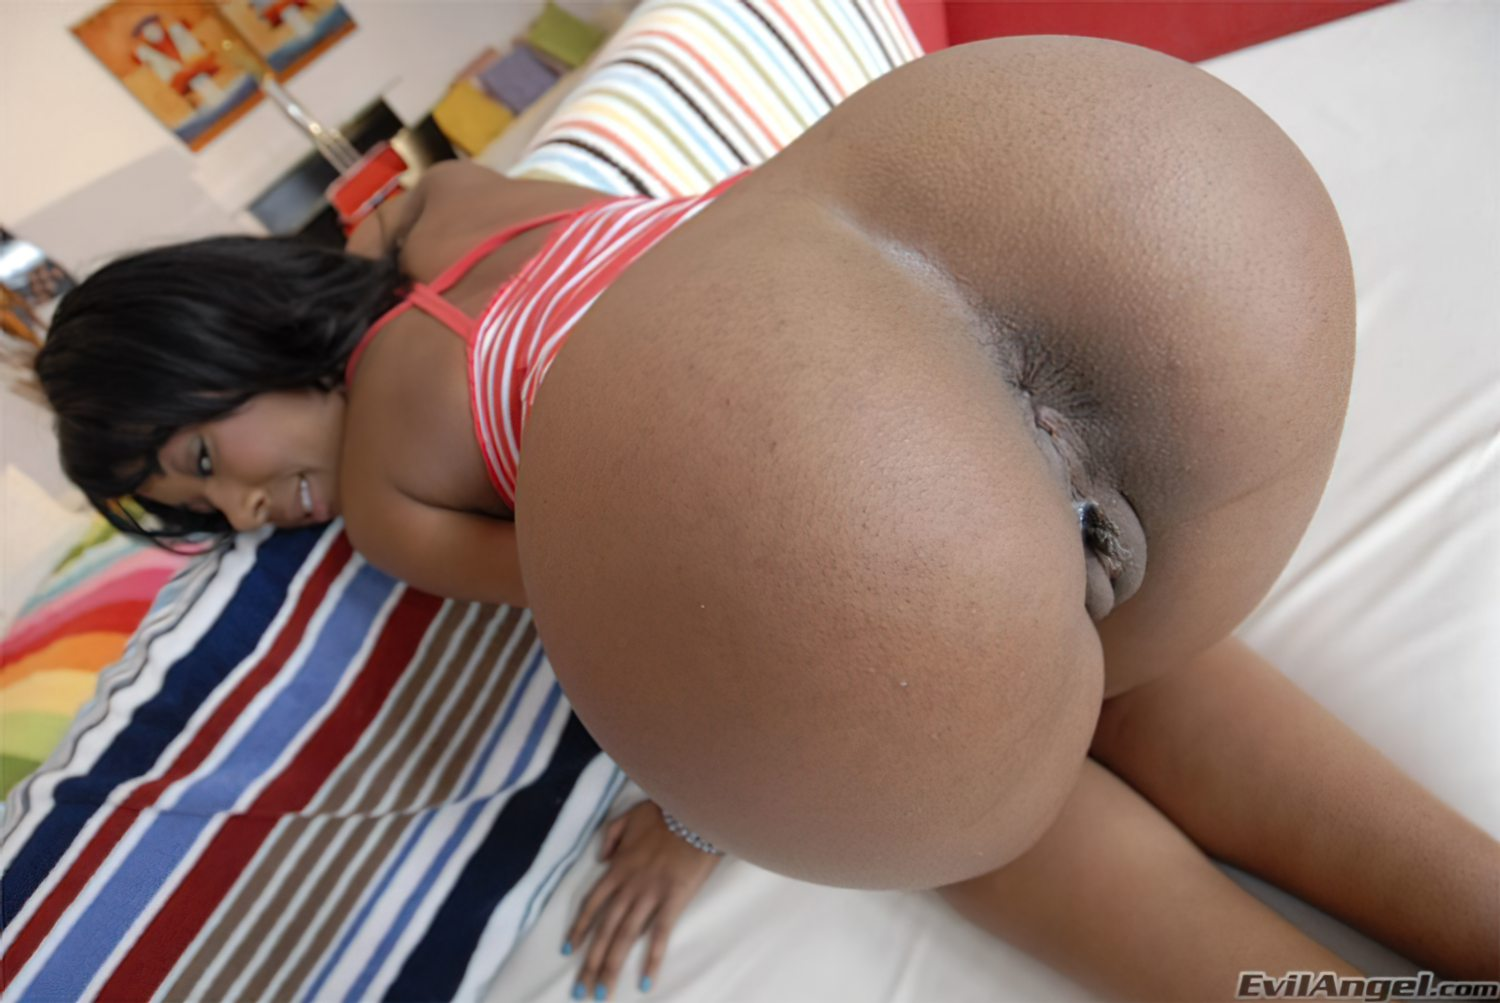 Negra do Rabo Grande (5)